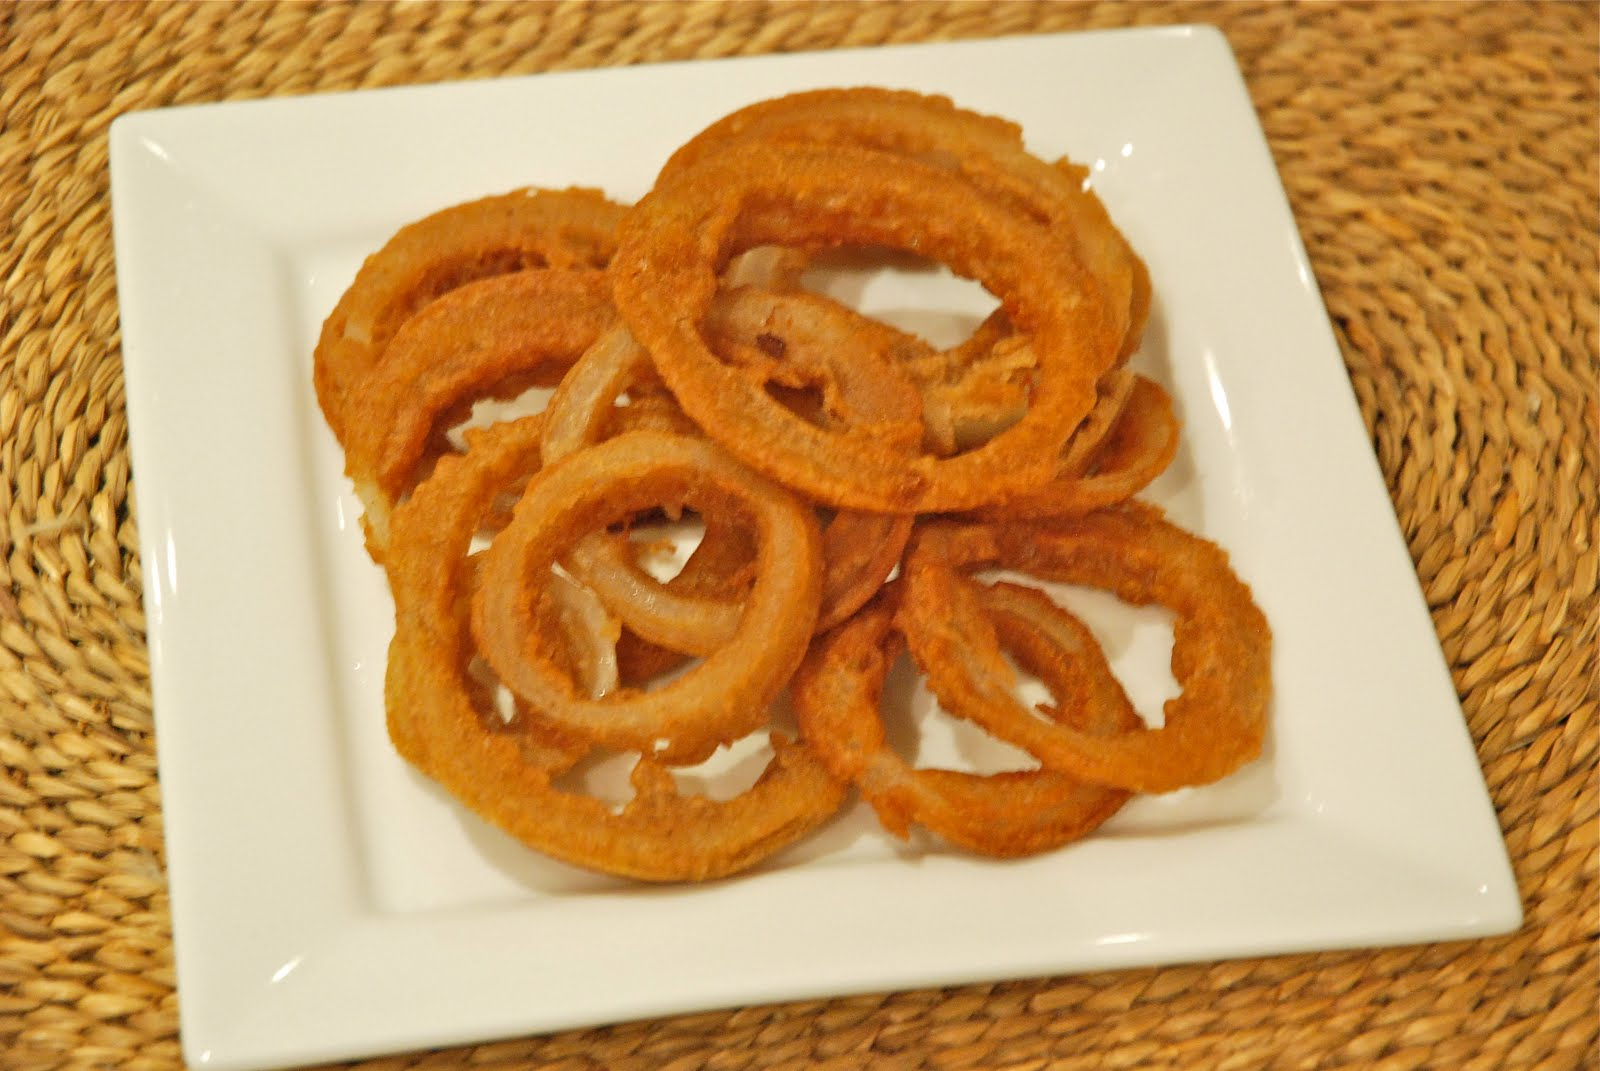 Our Gluten Free Family: Homemade Gluten Free Onion Ring Recipe from ...